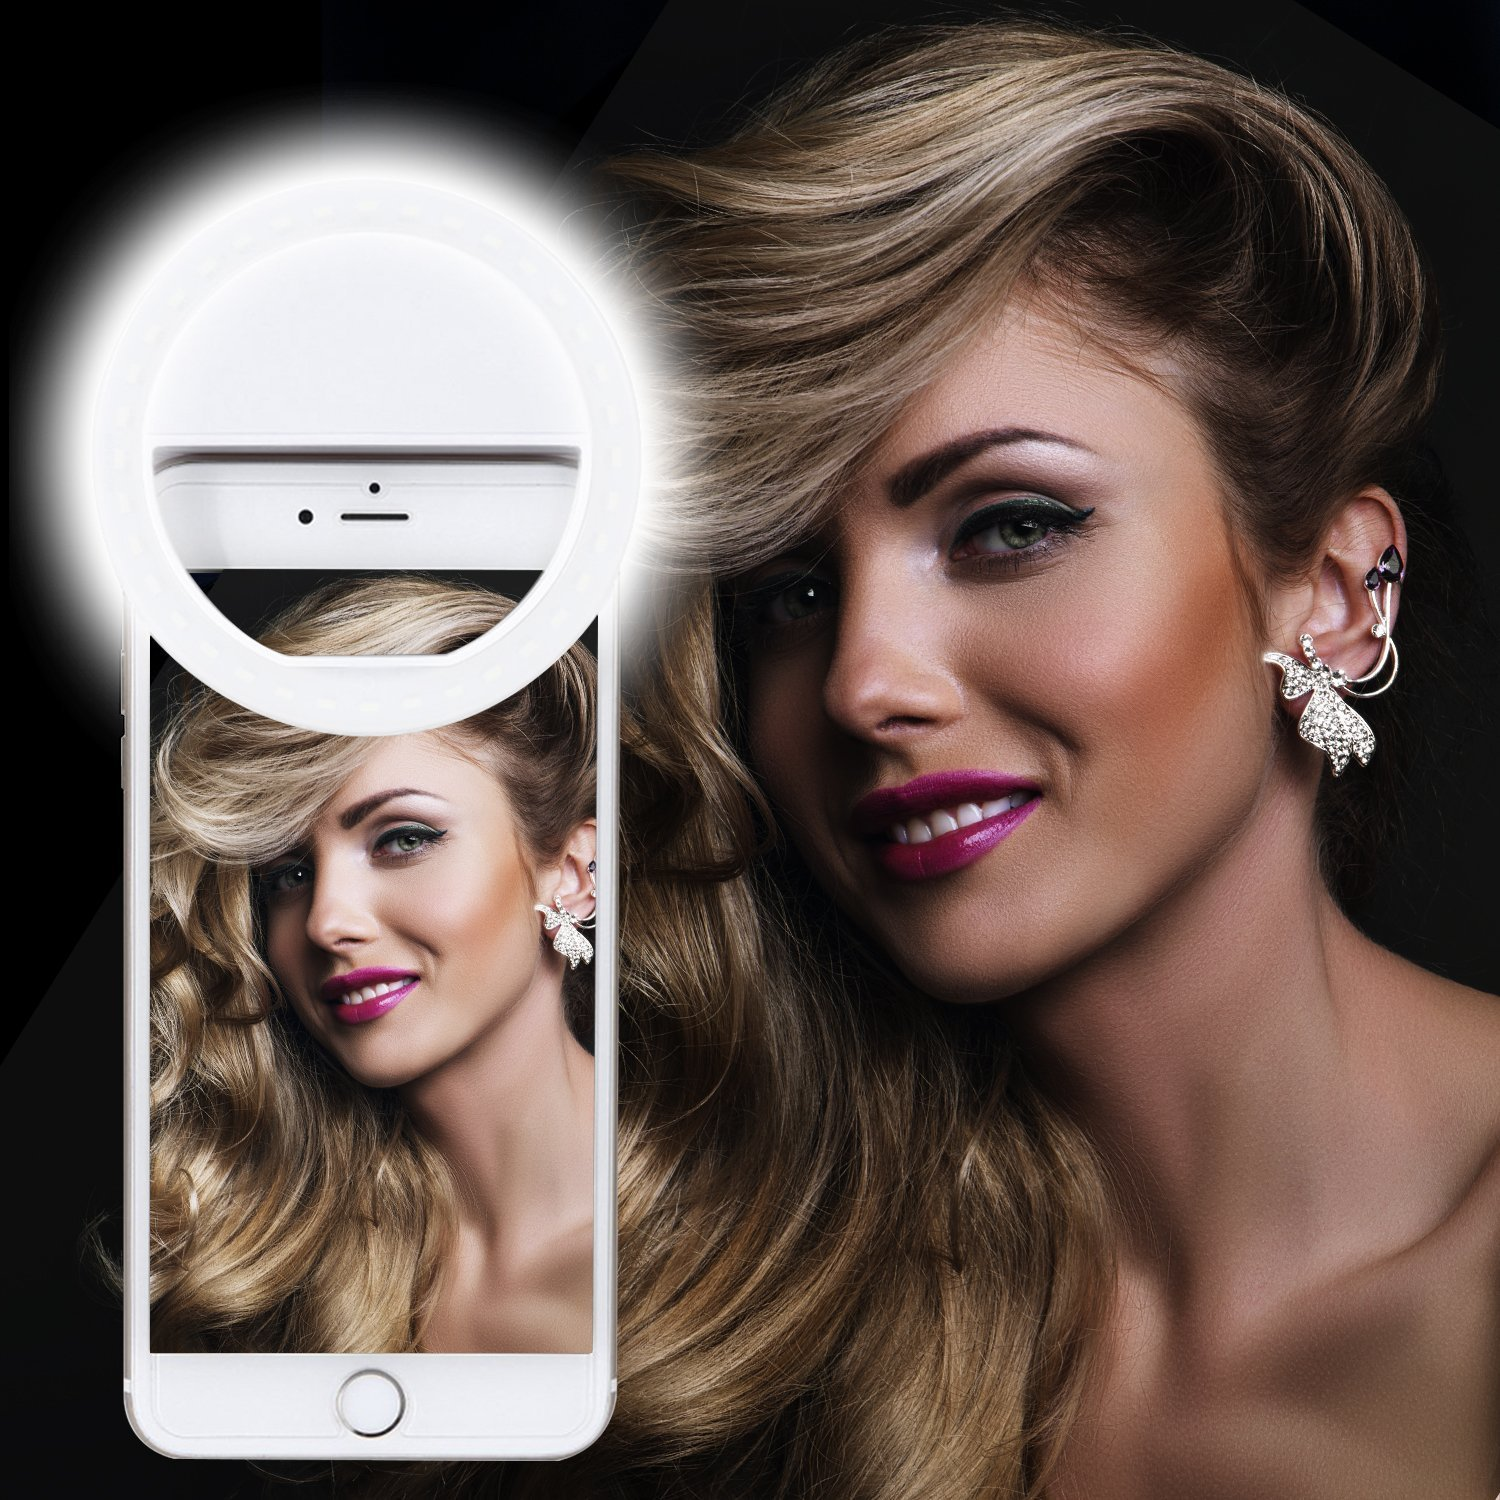 Selfie Ring Light, XINBAOHONG Rechargeable Portable Clip-on Selfie Fill Light with 36 LED for Smart Phone Photography, Camera Video, Girl Makes up (White, 36LED) by XINBAOHONG (Image #8)